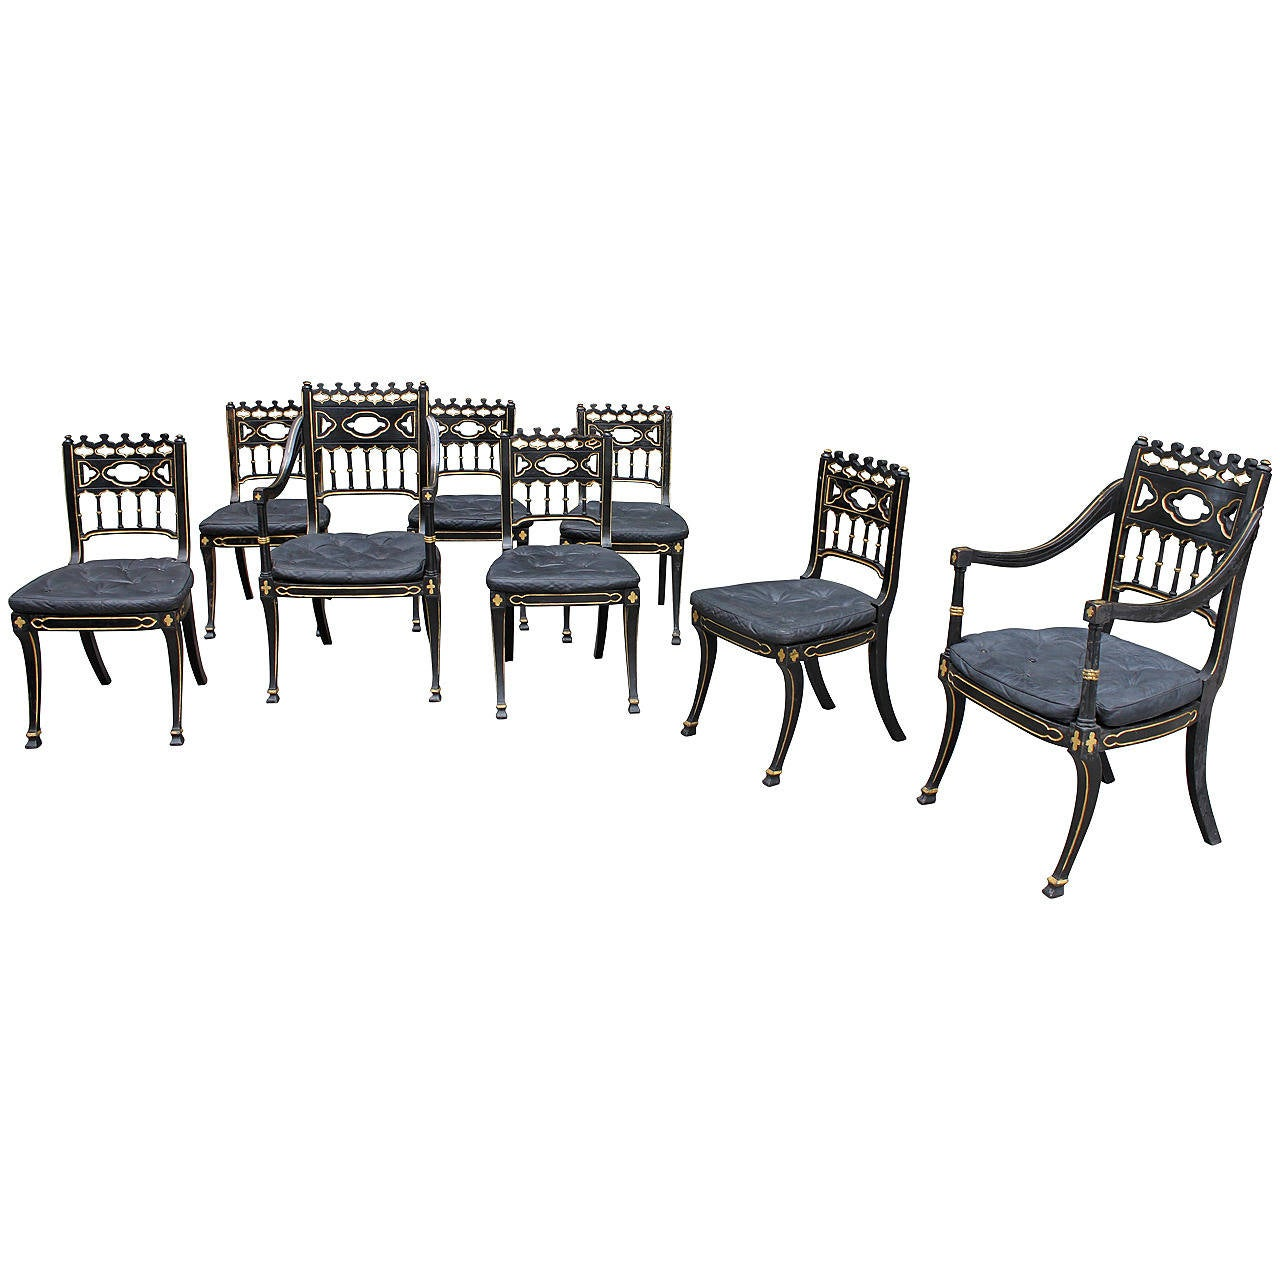 Gothic style regency dining chairs set of eight for sale for 8 dining room chairs